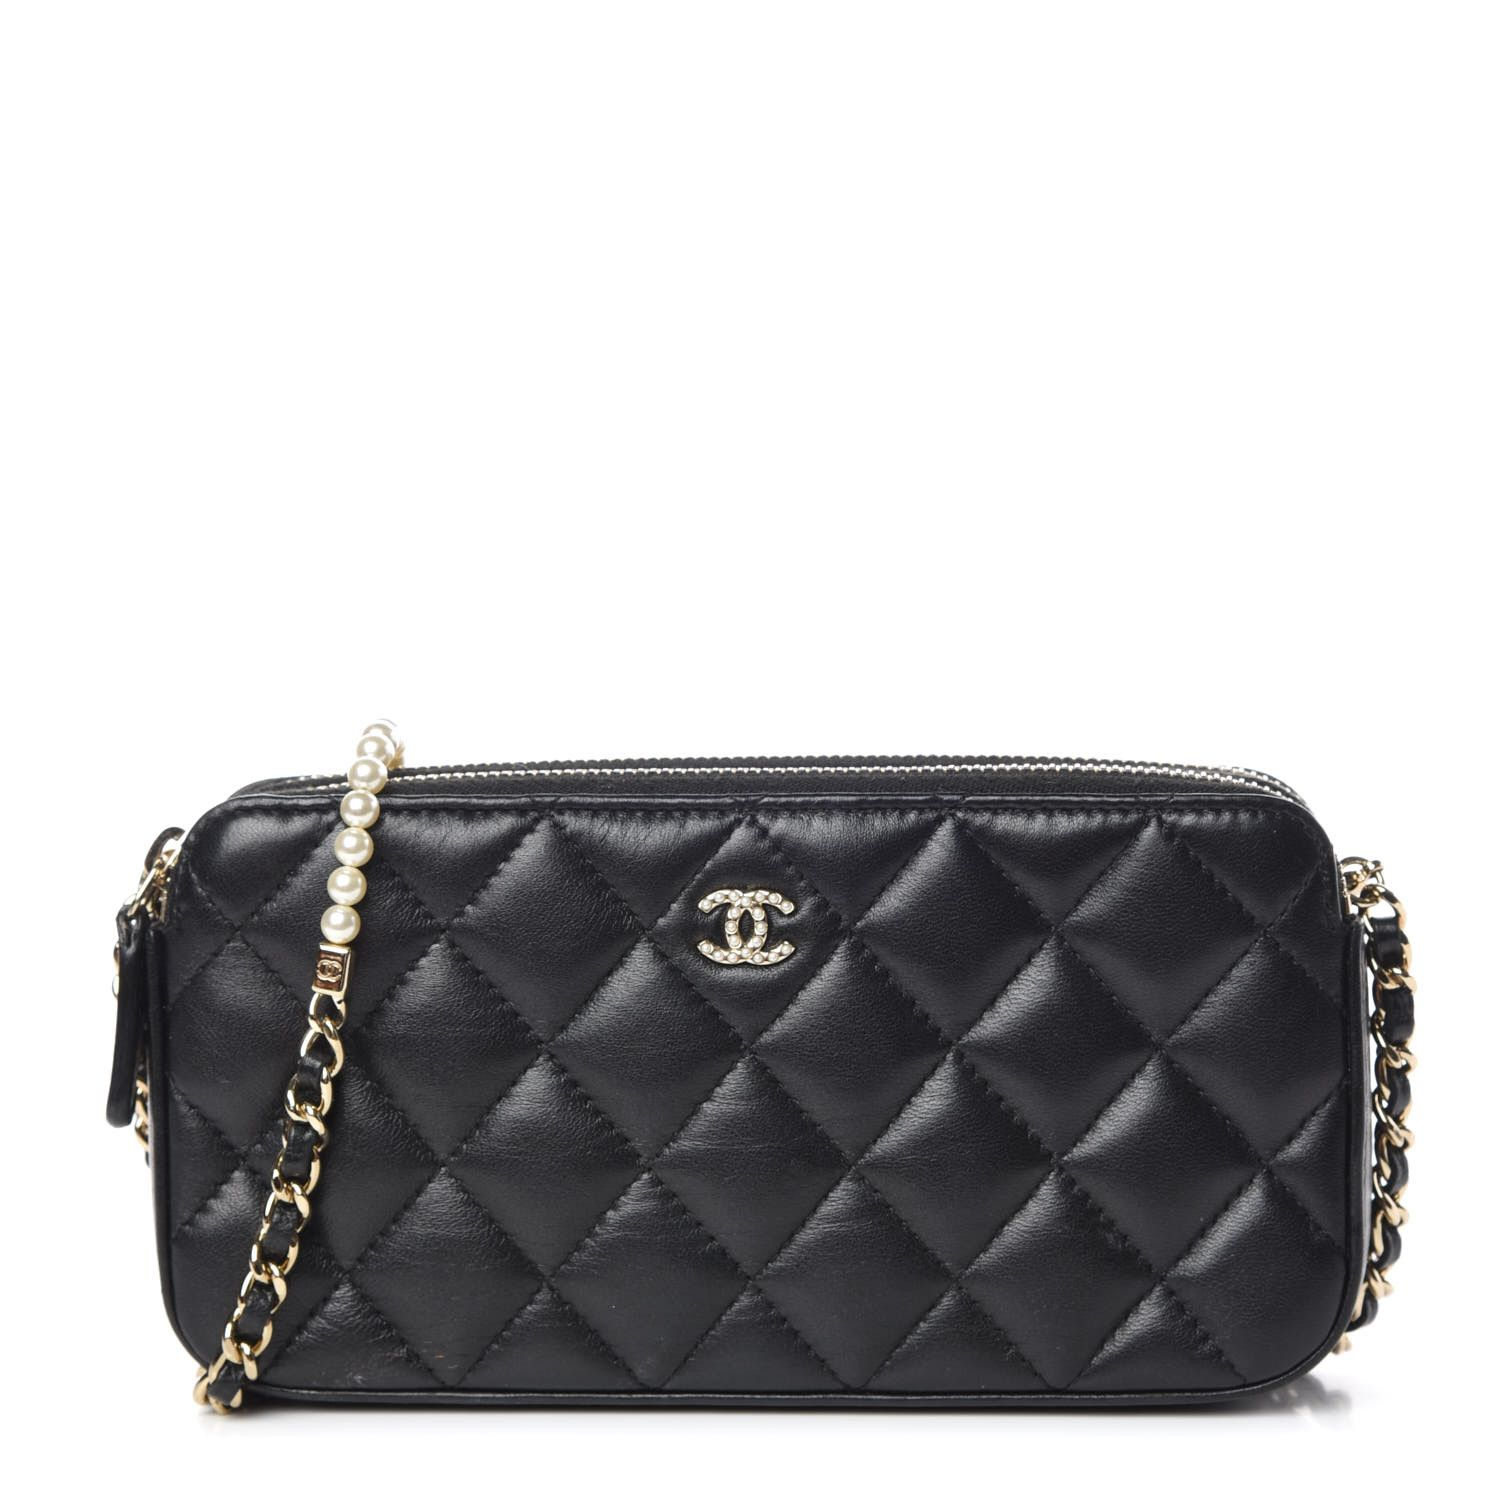 CHANEL Iridescent Lambskin Quilted Pearl Clutch With Chain